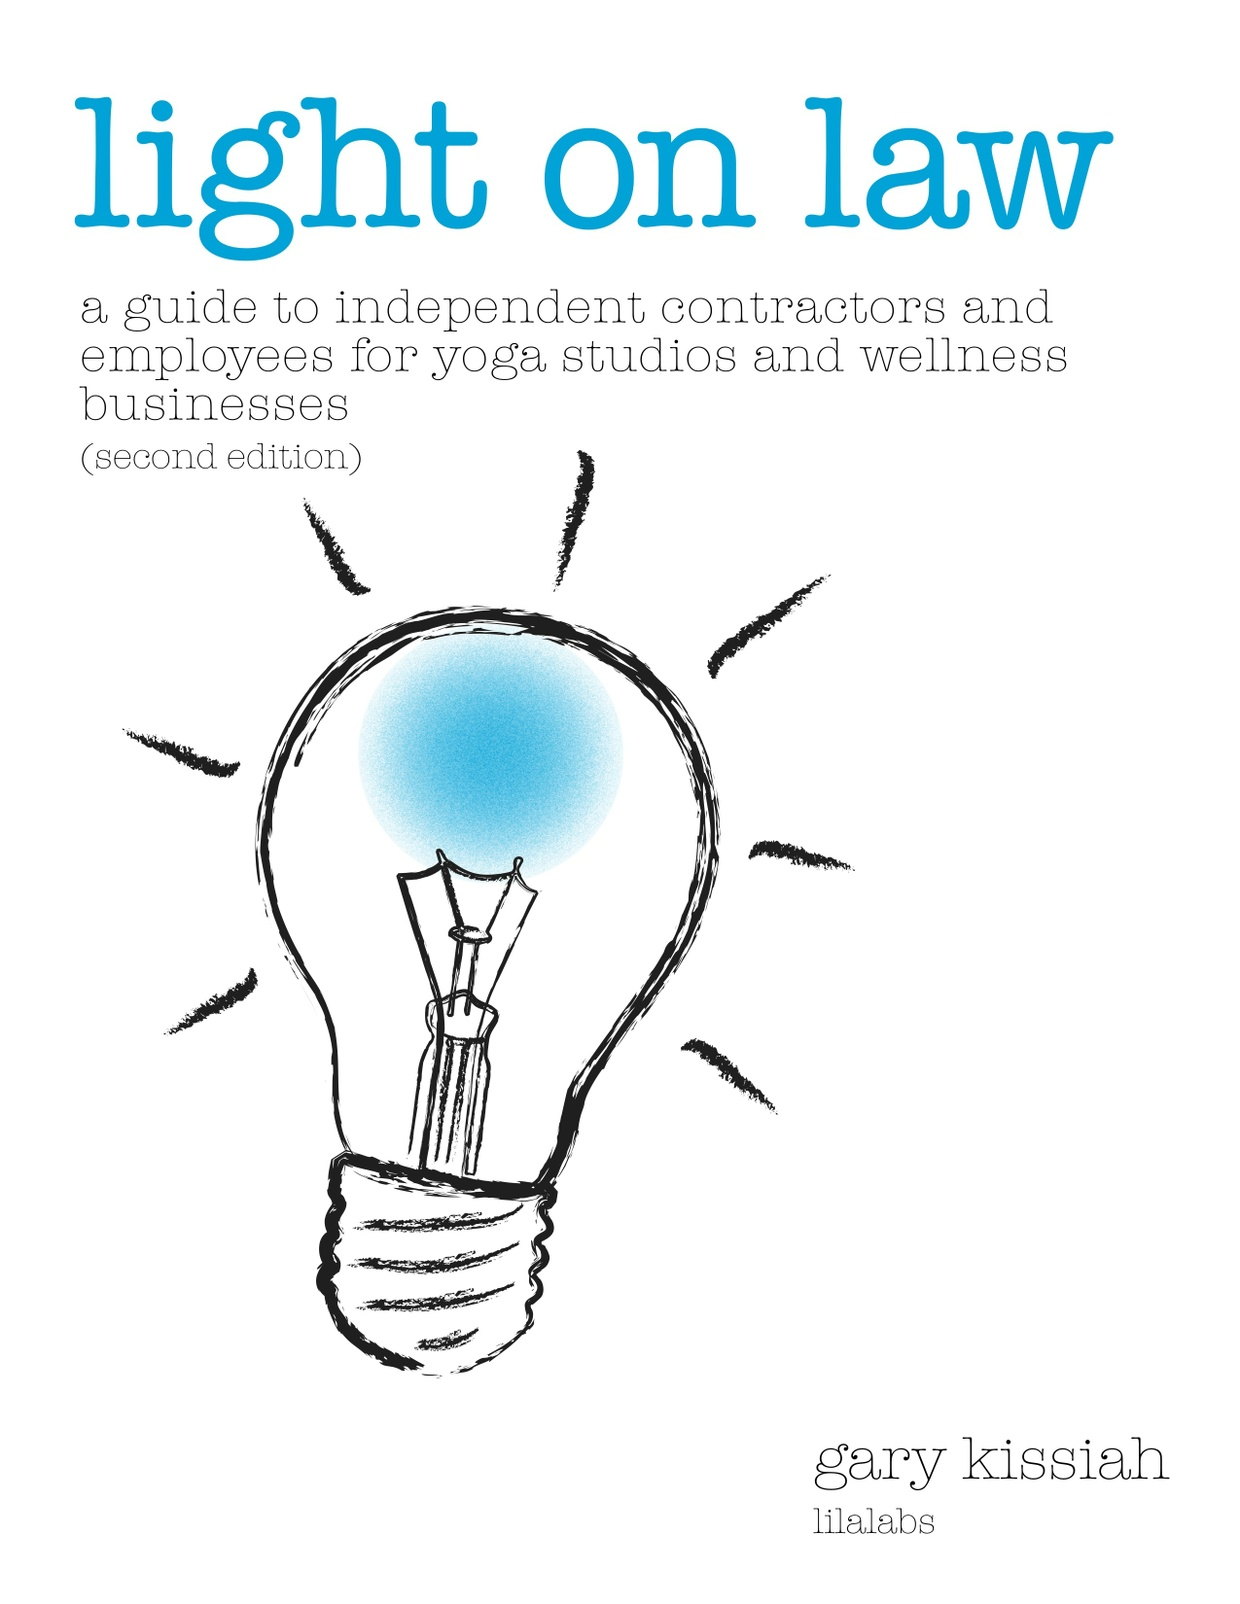 Light on Law- A Guide to Independent Contractors and Employees (Second Edition)